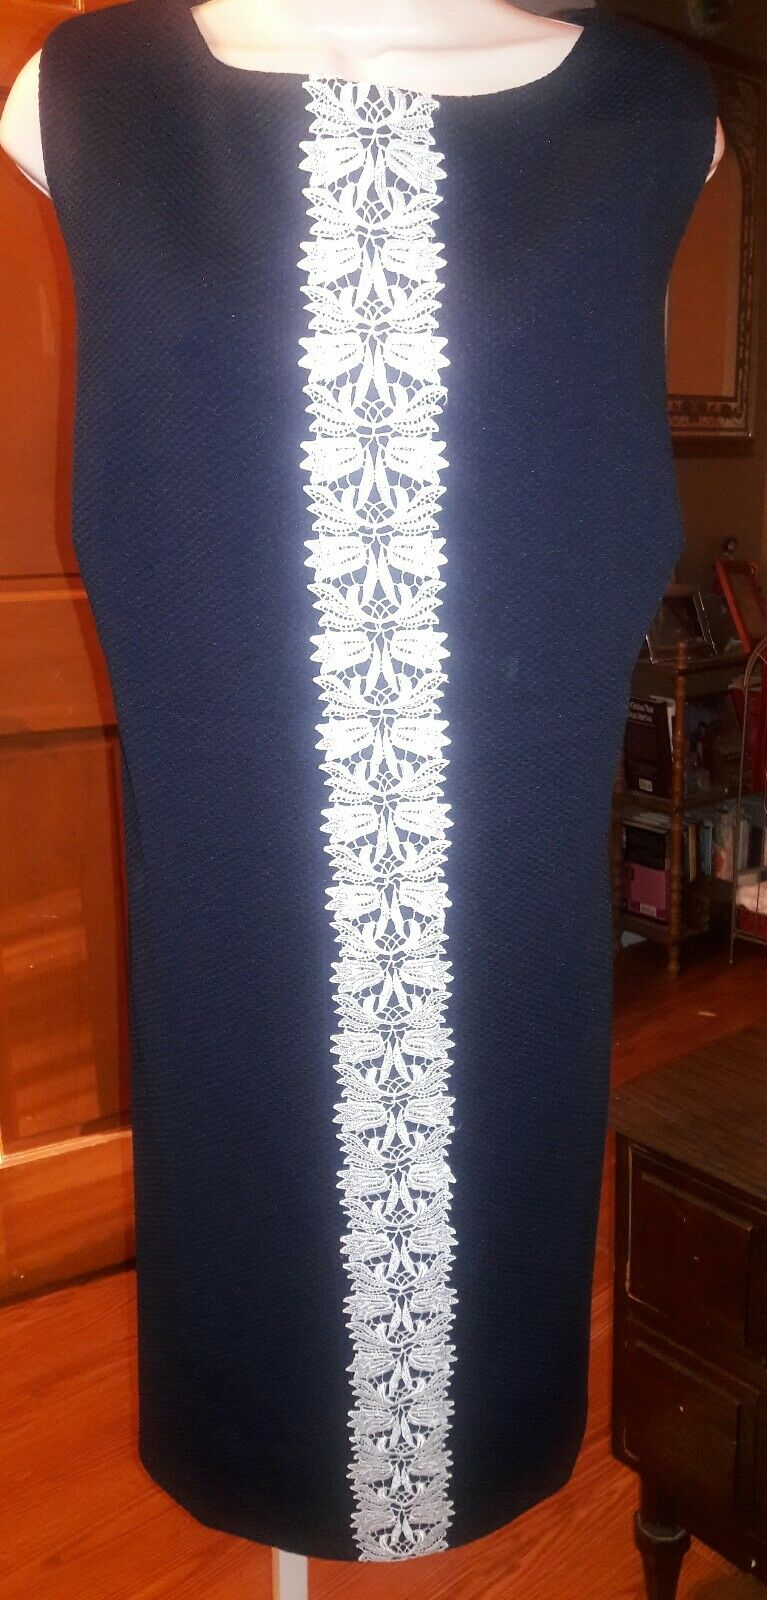 Chaps Woman Navy with White Lace Trim Dress Size 22W  NWT  FREE SHIPPING